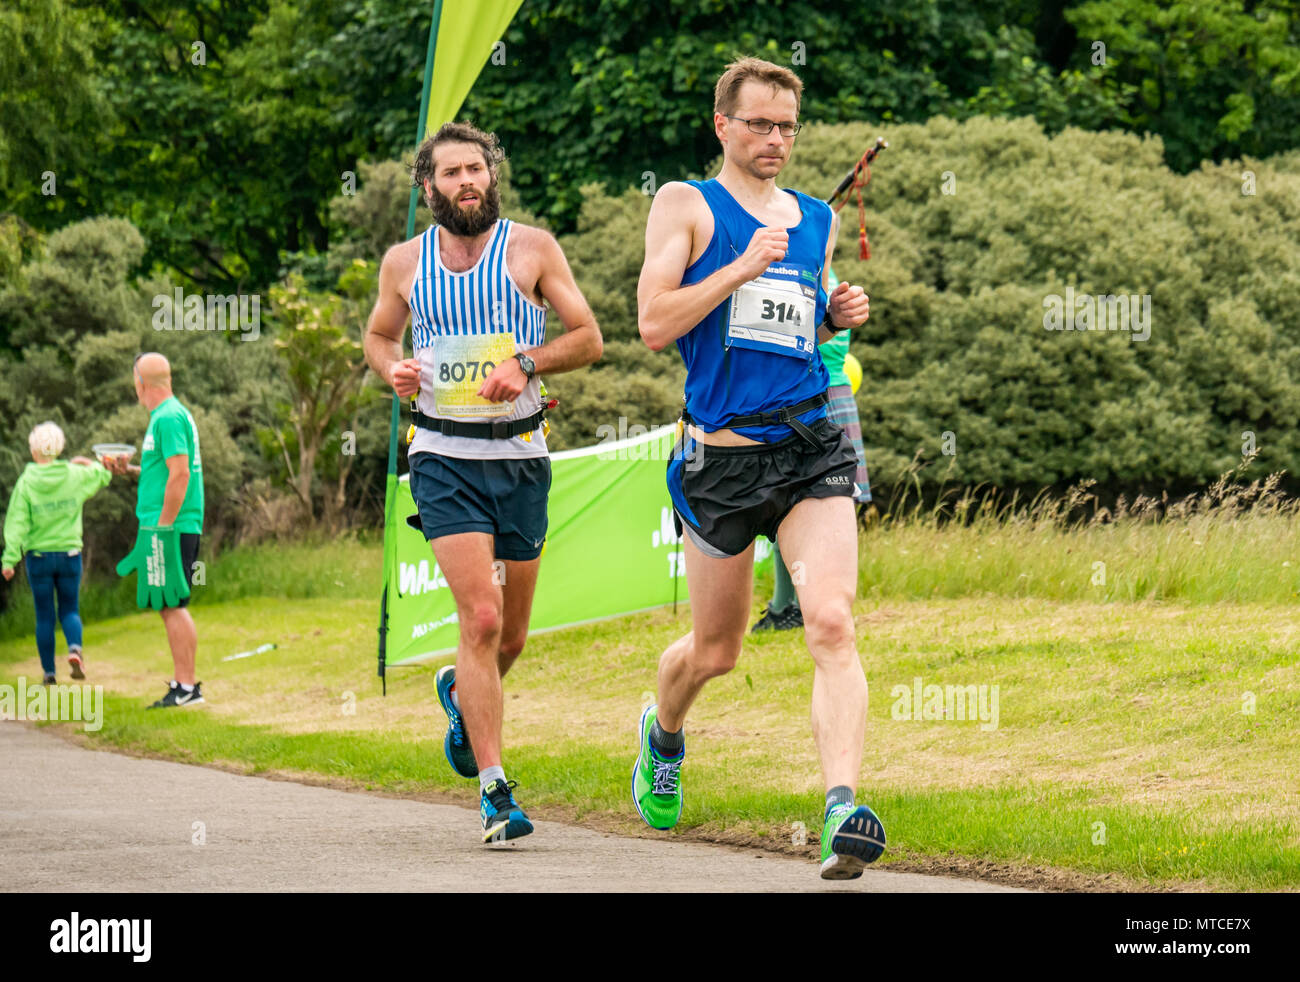 Gosford Estate,  East Lothian, Scotland, UK. 28th Ma, 2017. Male marathon runners, Robert Kalicinski, placed in top 50 finishers, Edinburgh Marathon - Stock Image